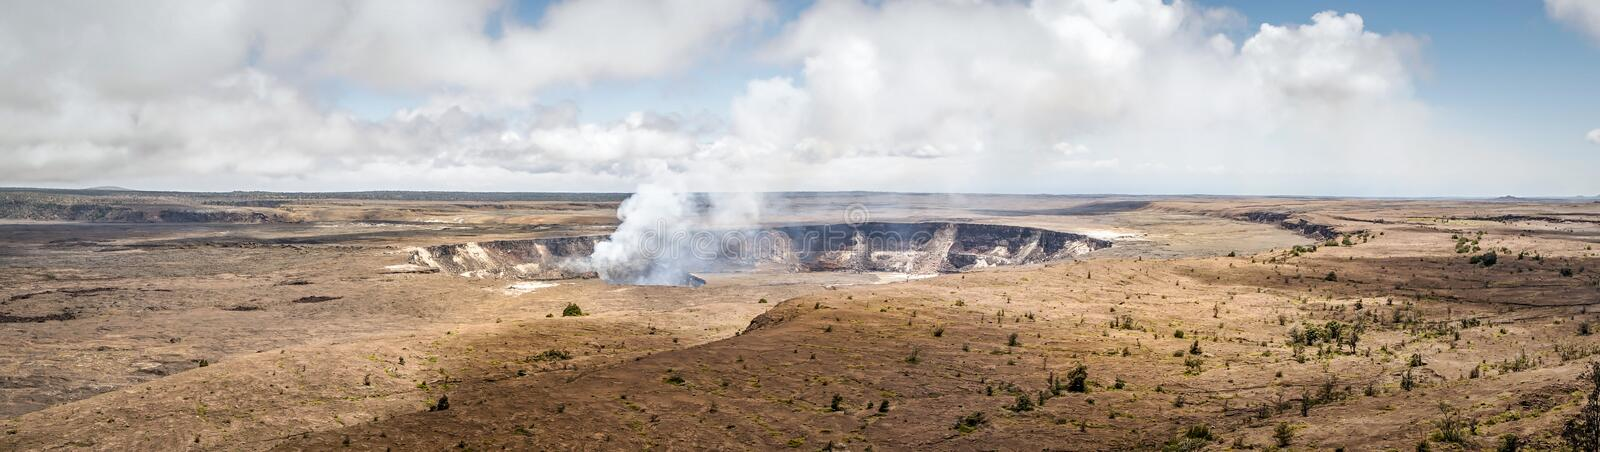 Mt. Kiluaea. The crater of Mt. Kilauea inside the large caldera. Located in Volcanoes National Park, Hawaii royalty free stock photos